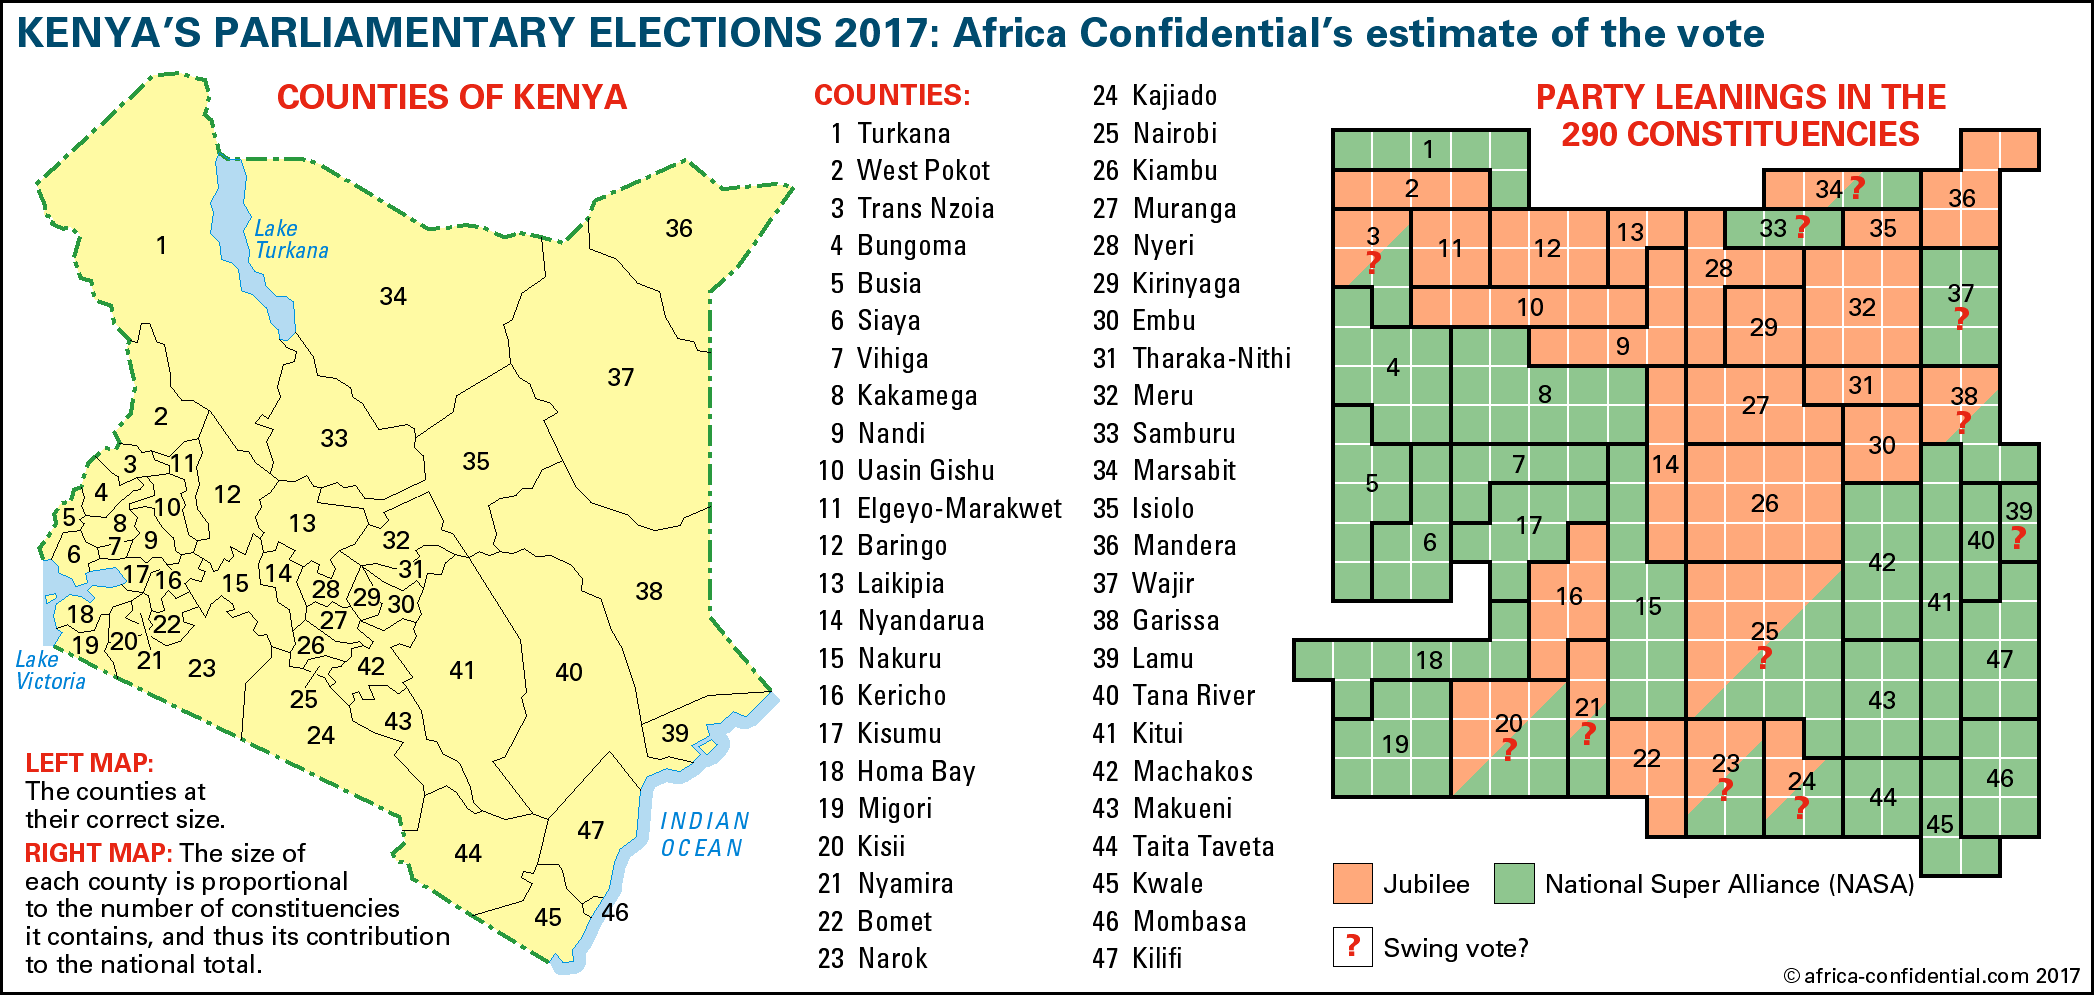 Map Copyright © Africa Confidential 2017